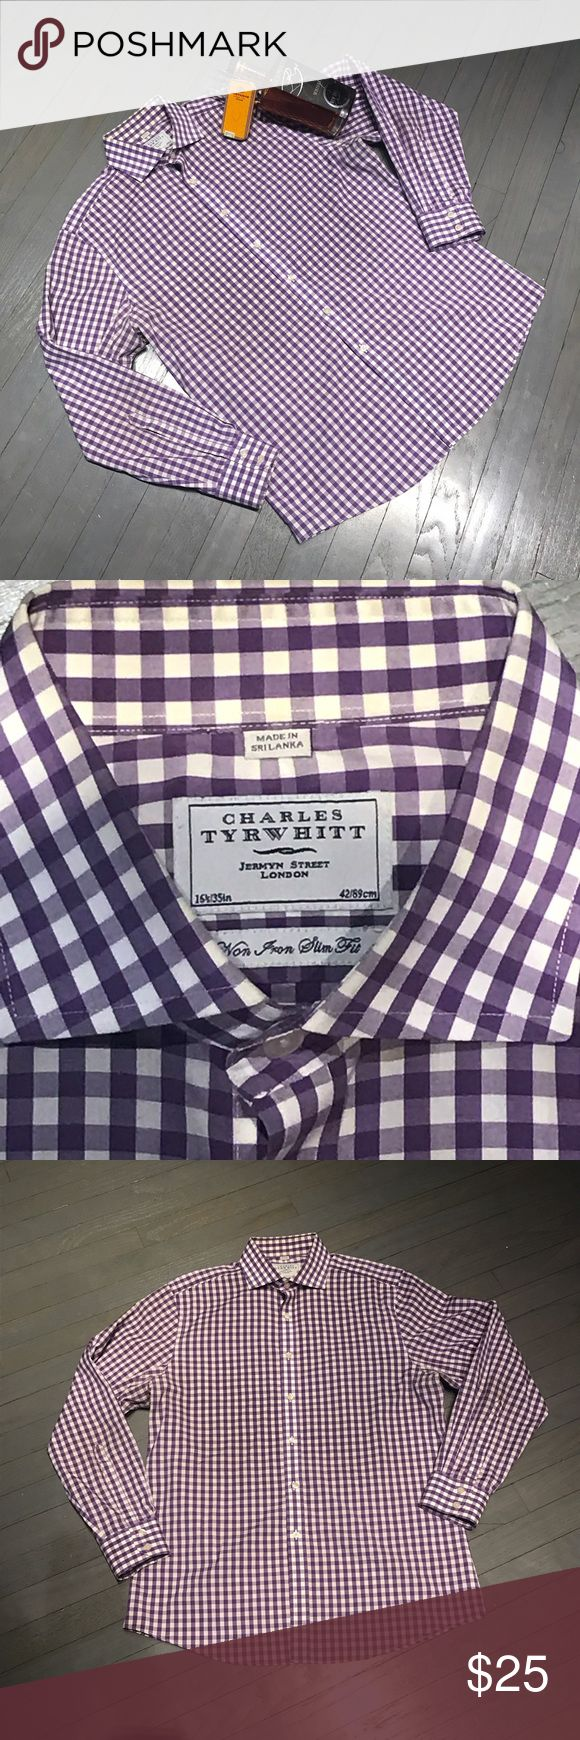 Charles Tyrwhitt purple white check non iron slim Charles Tyrwhitt purple white check non iron slim fit spread collar button down shirt. Not recently dry cleaned ASOS Shirts Dress Shirts